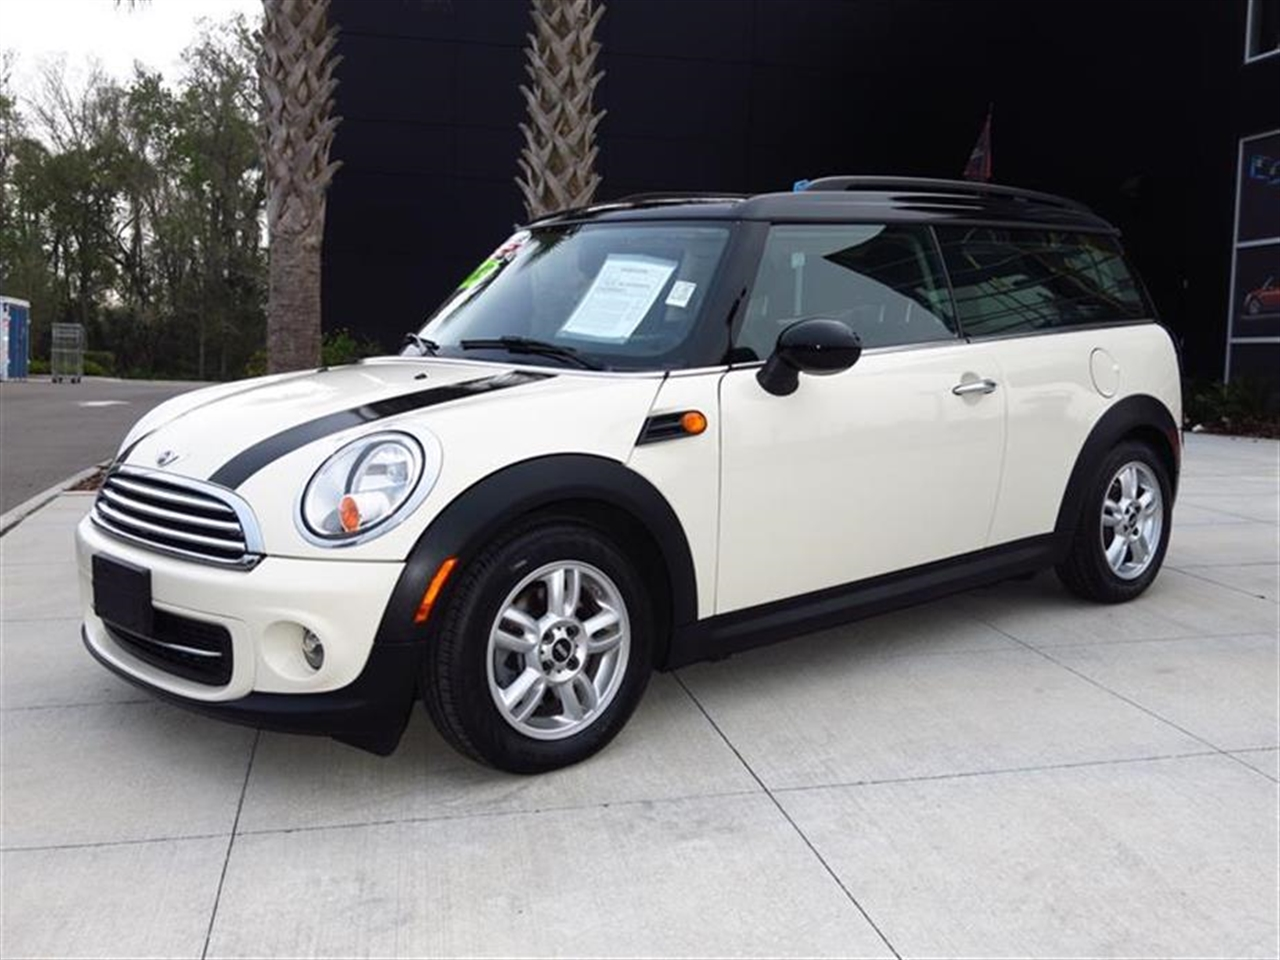 2013 MINI COOPER CLUBMAN 2dr Cpe Clubvan 21378 miles 1 rear cup holder 2 12V pwr outlets Air